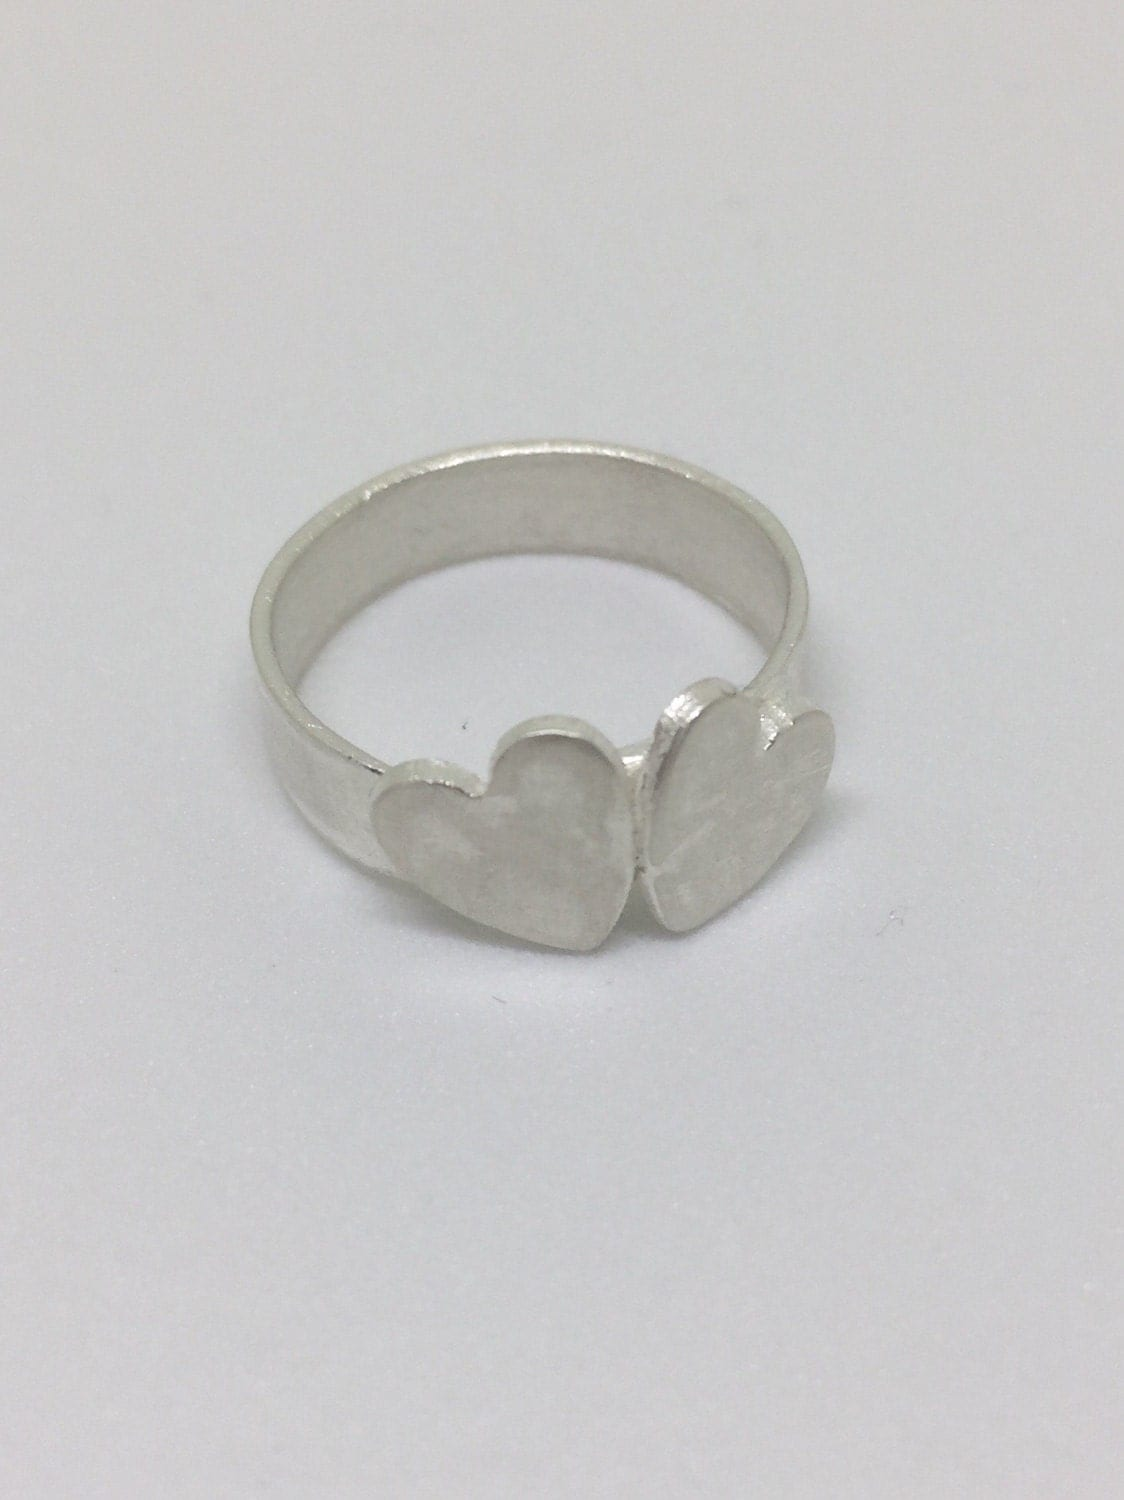 Silver double heart ring chunky ring stacking ring statement ring gift for girlfriend love hearts anniversary present boho chic